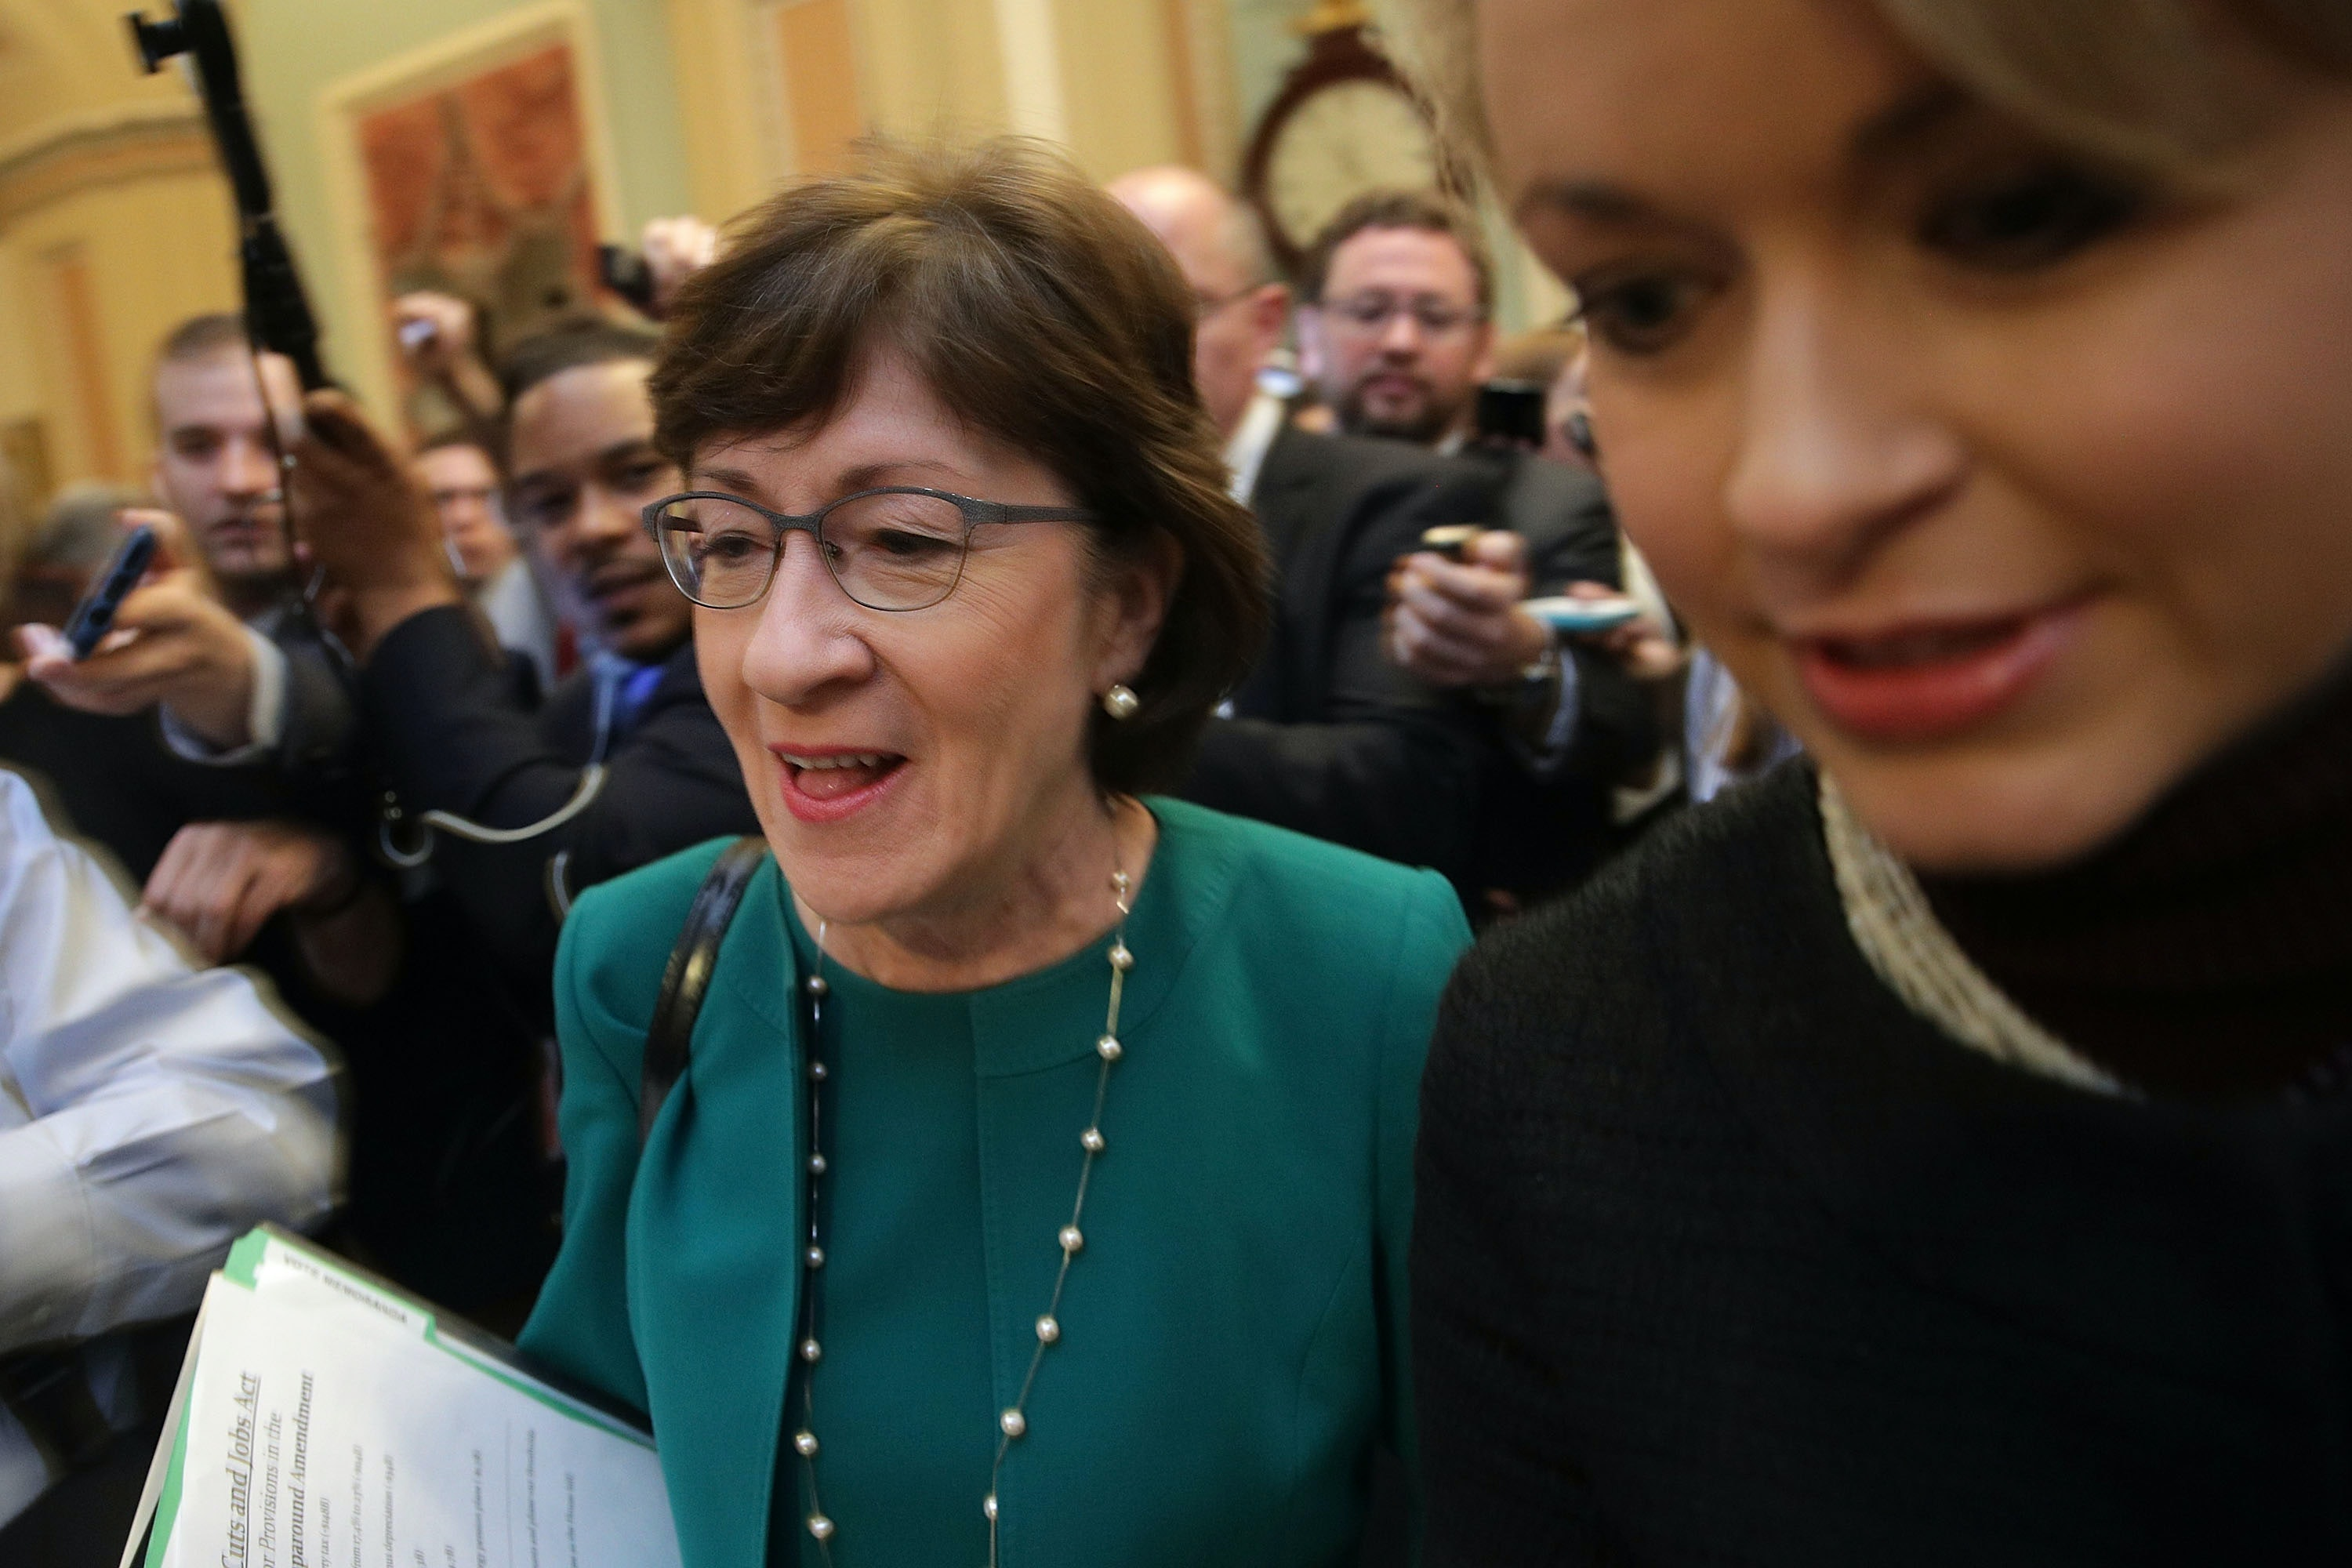 Collins blasts 'unbelievably sexist' news coverage of her tax bill support